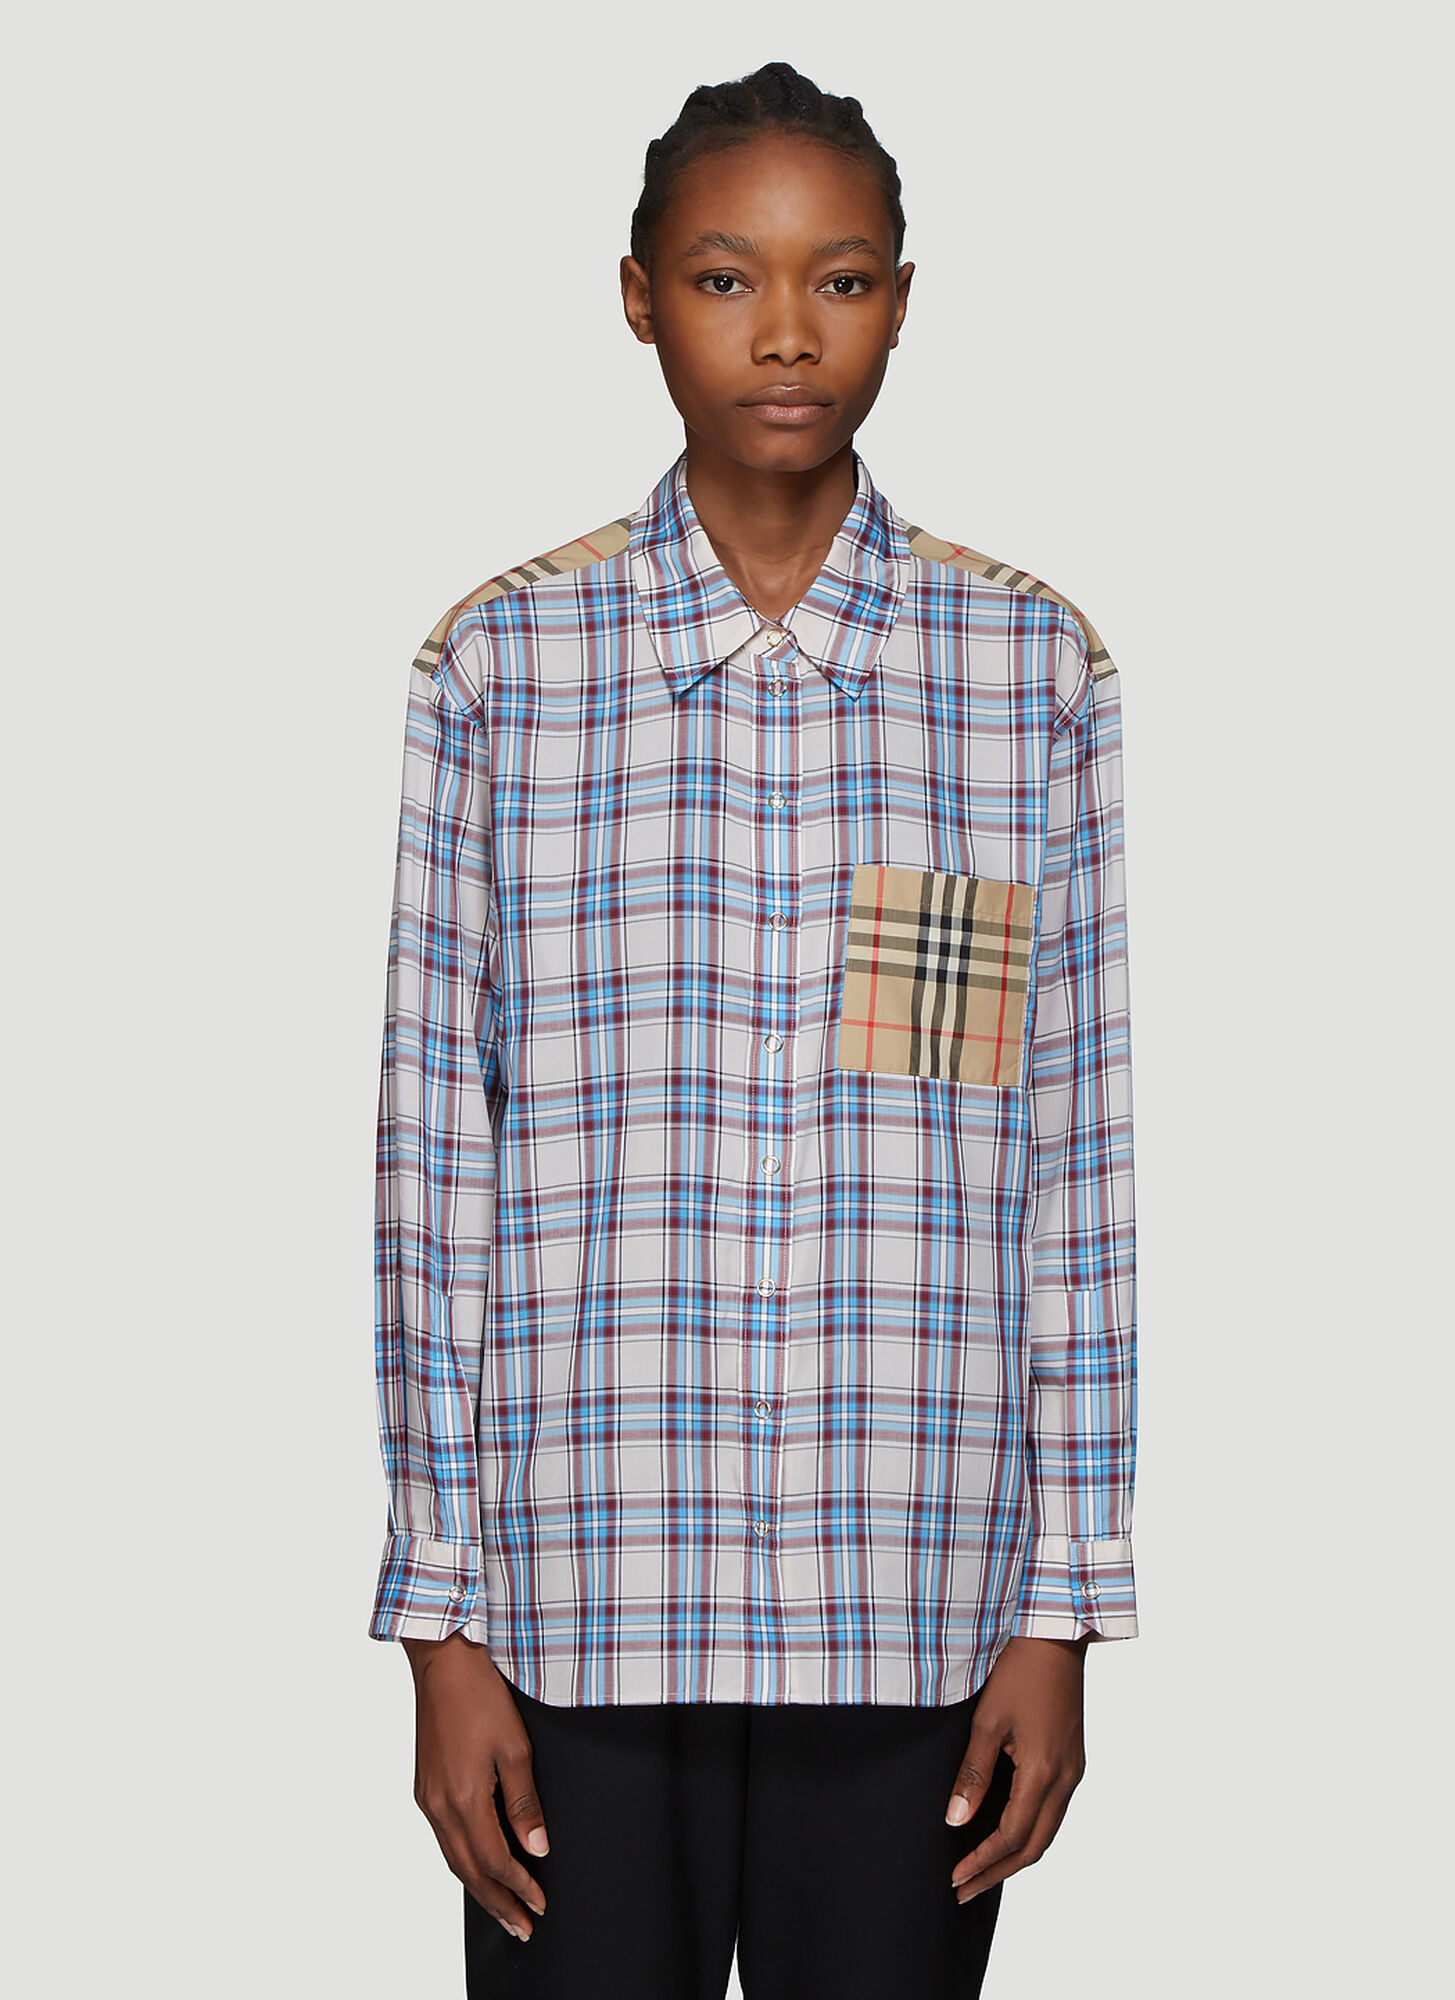 Burberry Contrast Check Print Shirt in Blue